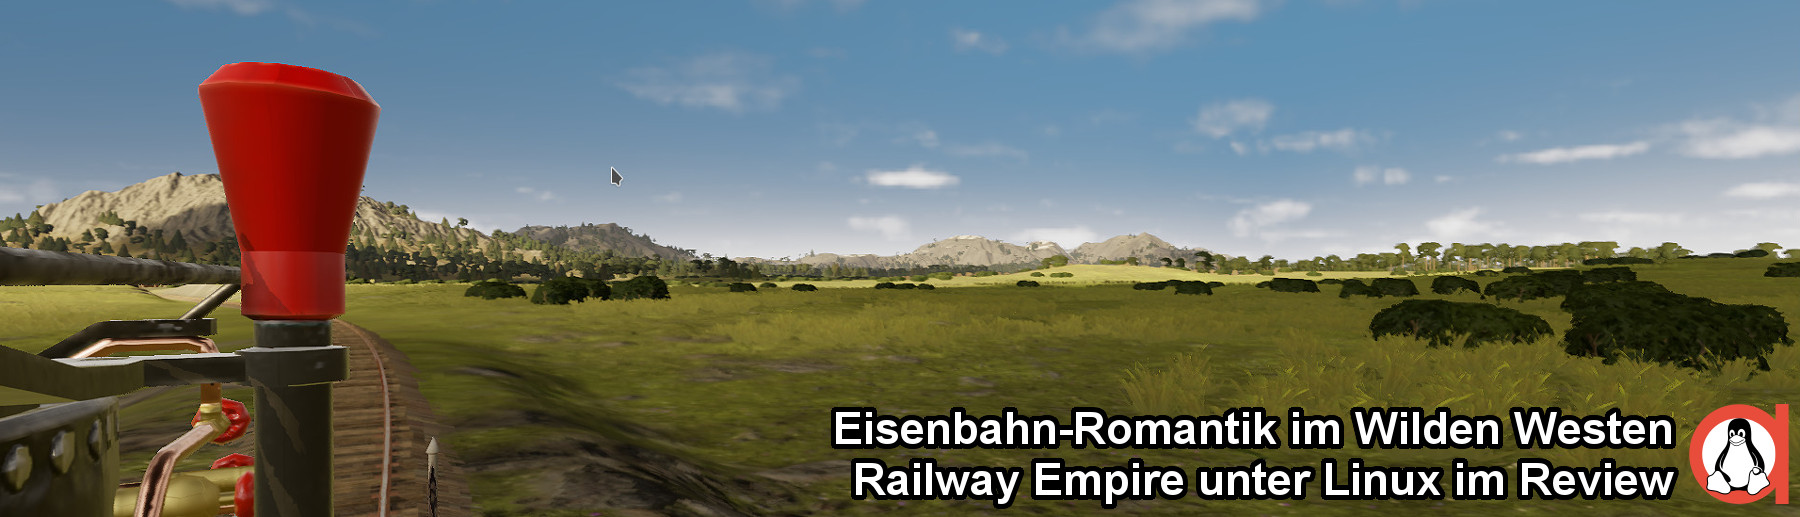 https://www.holarse-linuxgaming.de/sites/default/files/2018-01-30-1/railway_empire_teaser_0.jpg